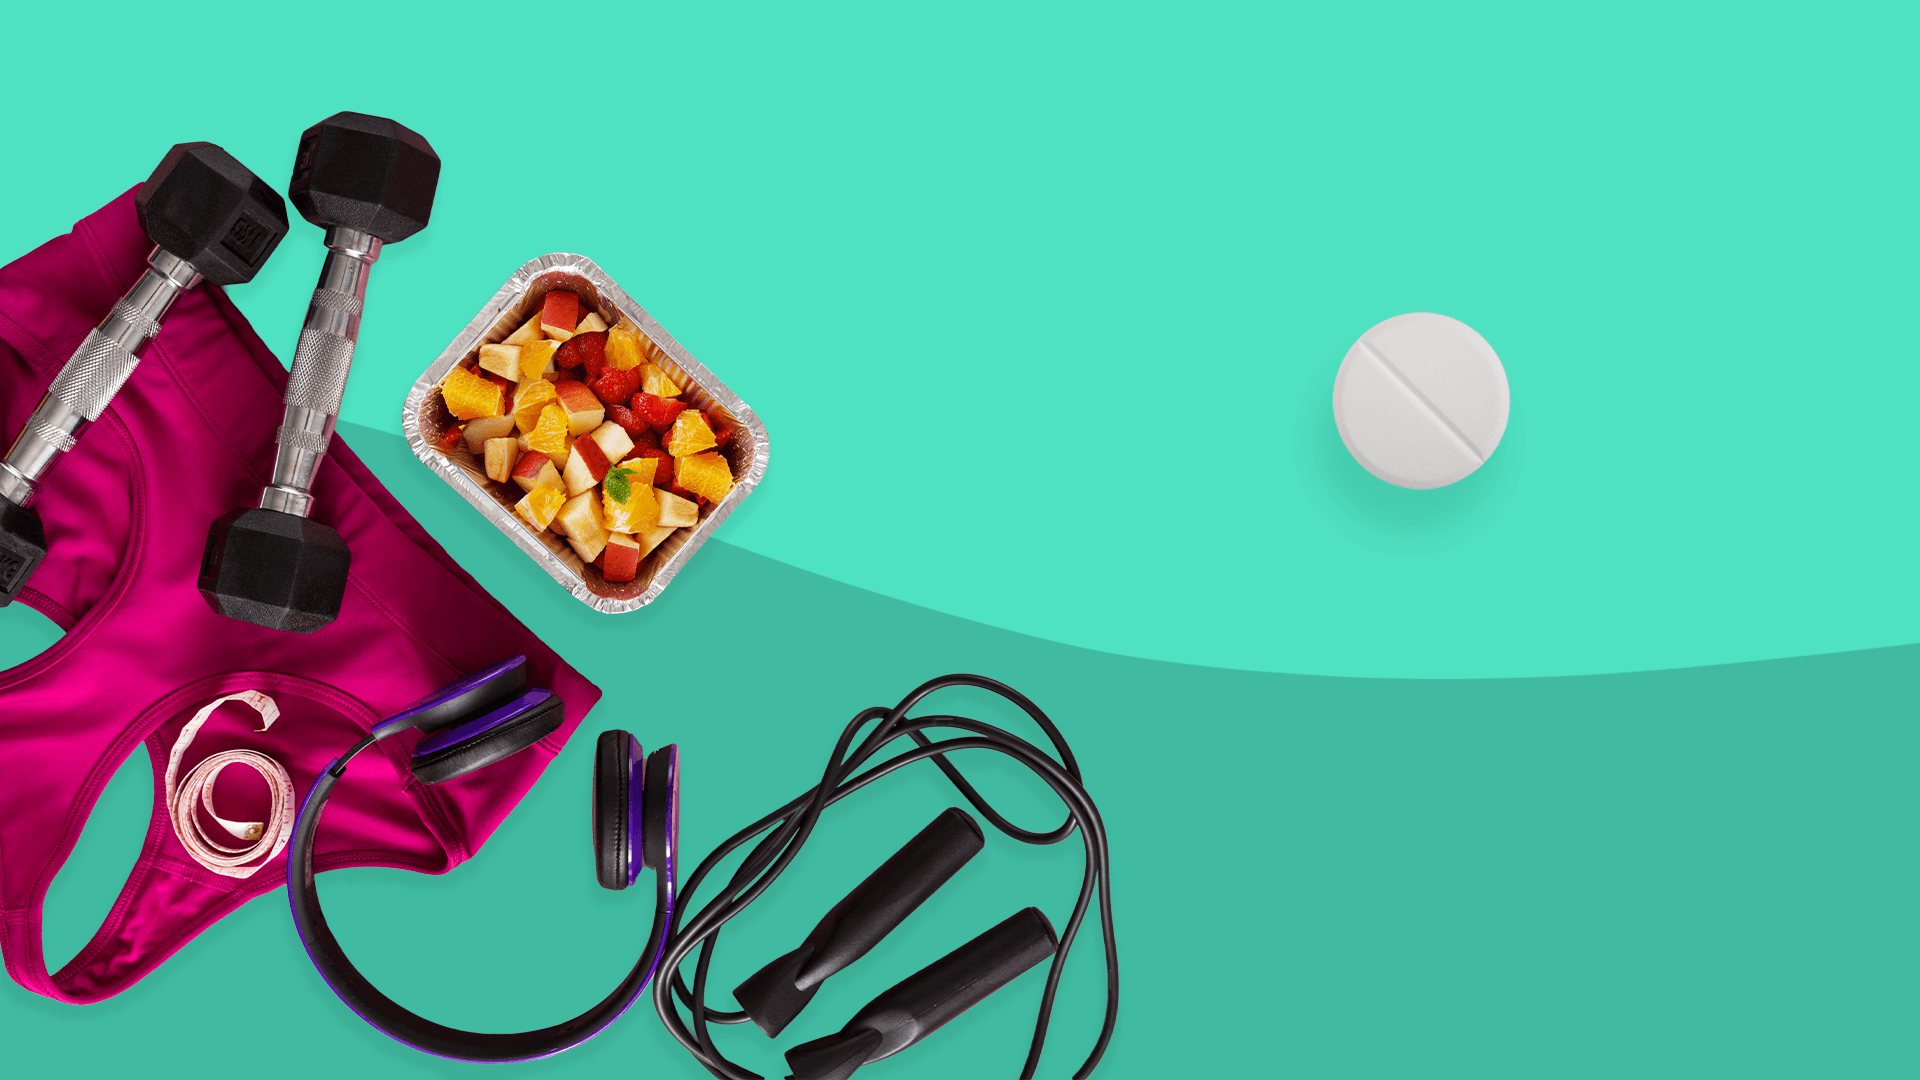 Is it safe to exercise while taking Xanax?